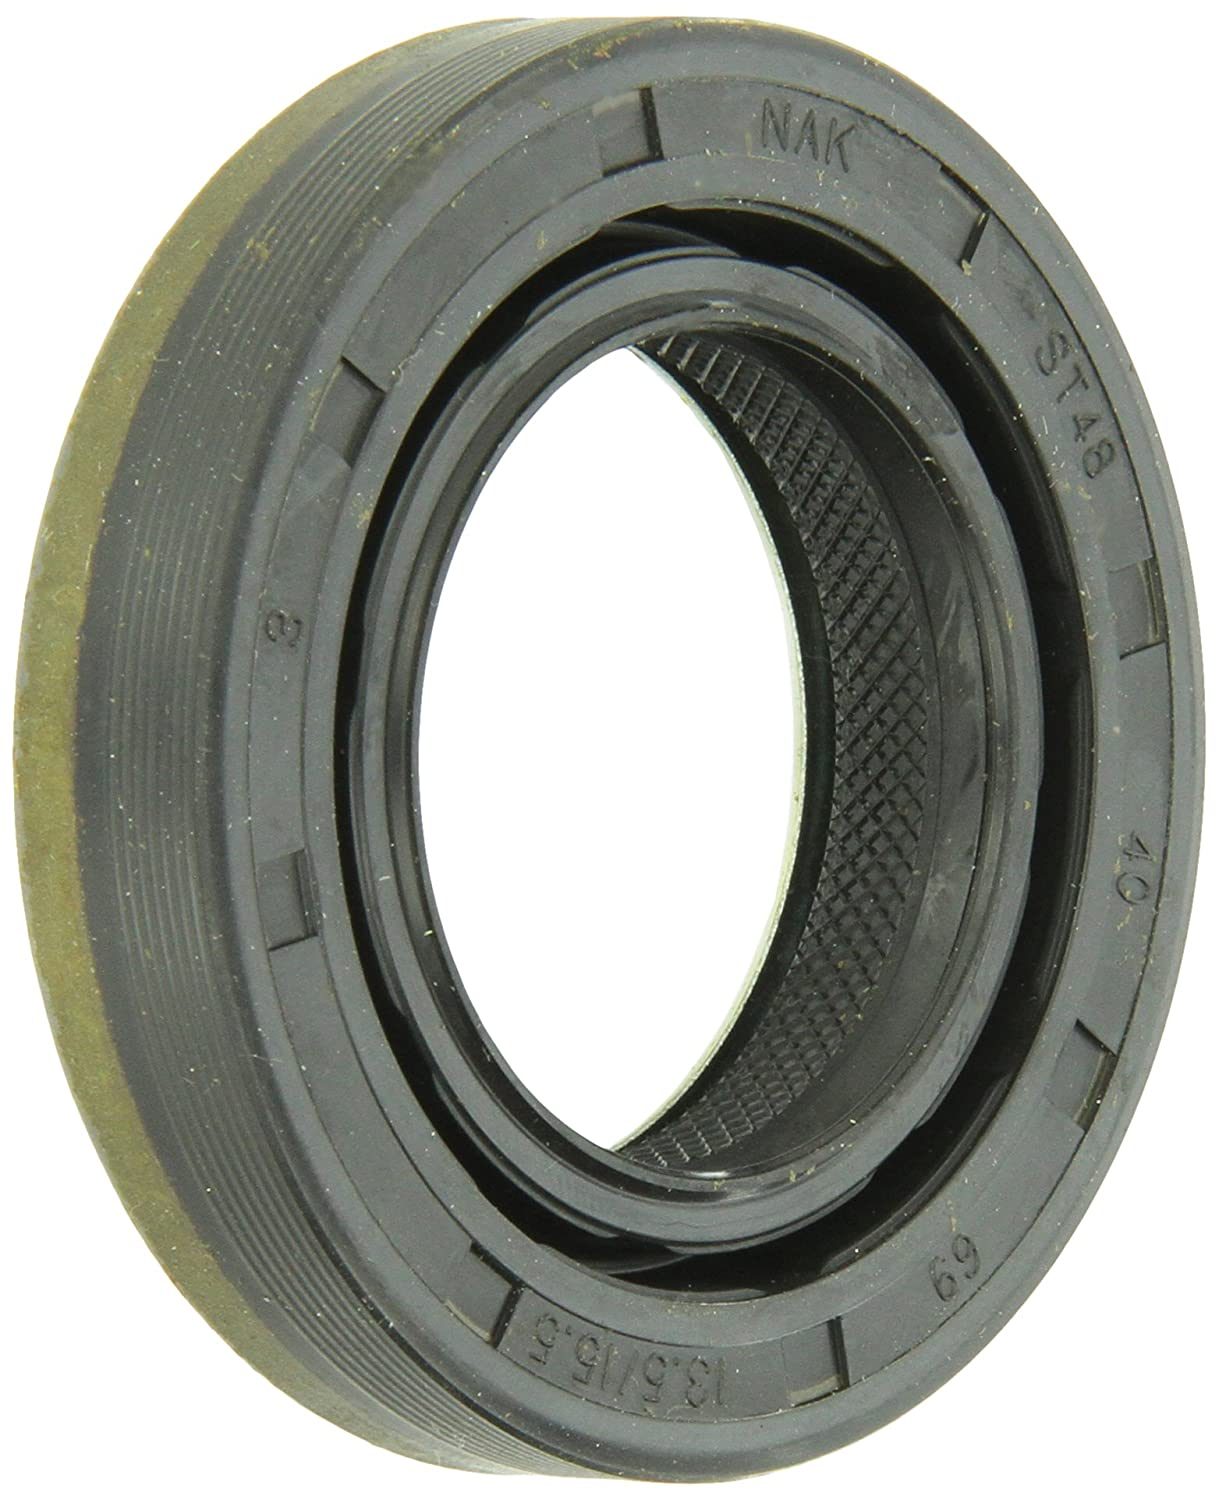 SKF 15552 Front Axle Shaft Seal